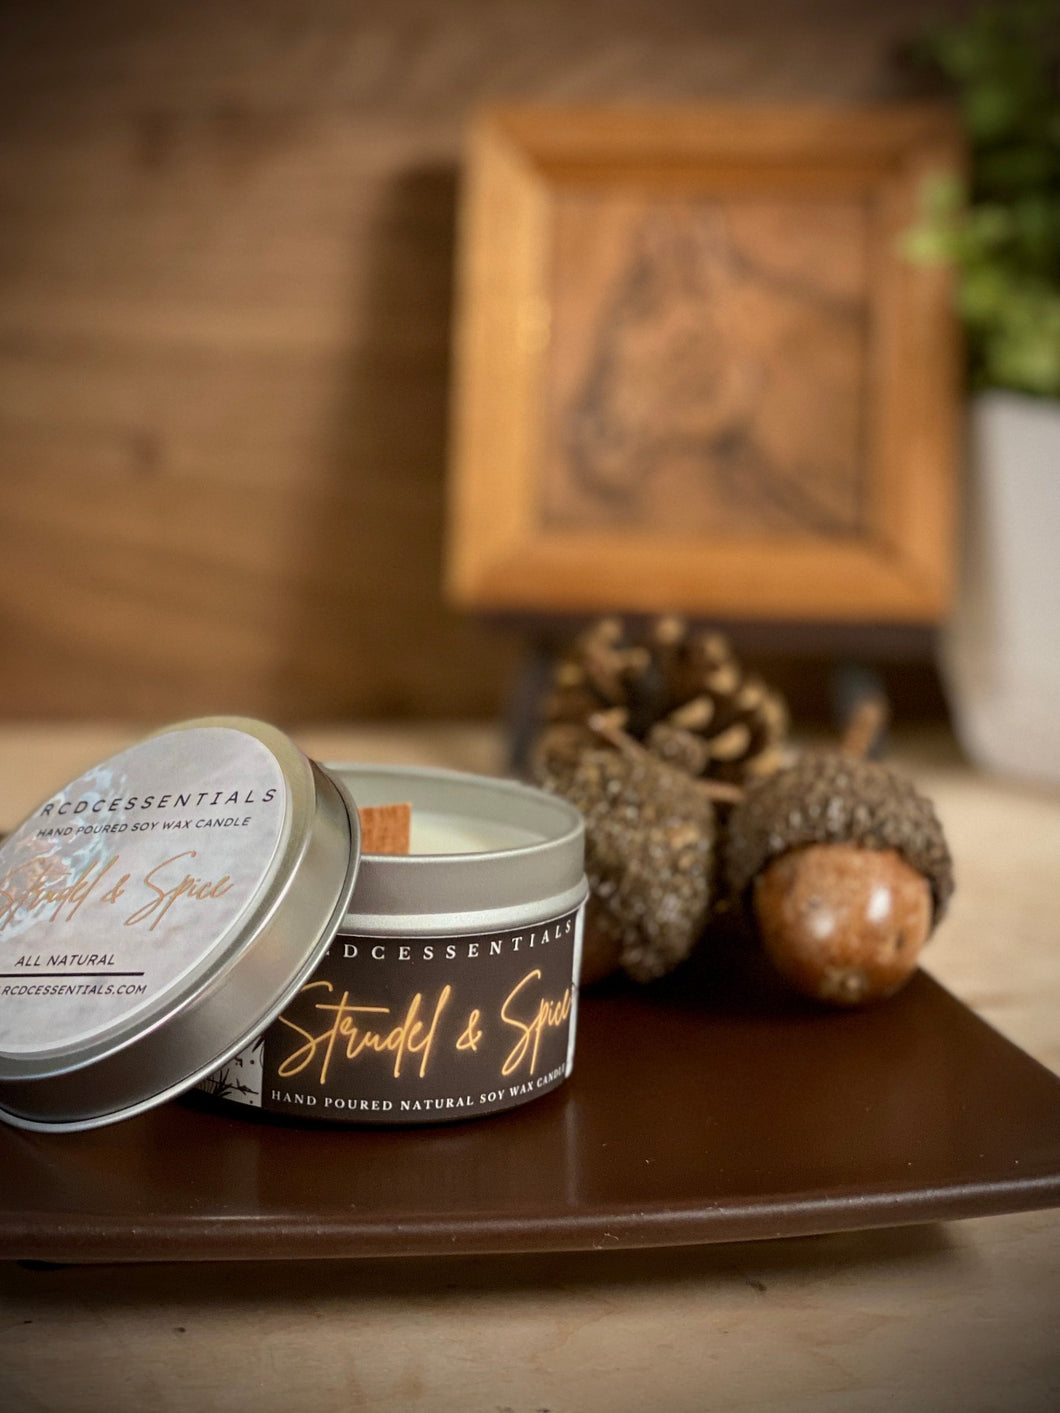 Strudel & Spice ~ Natural Hand Poured Soy Candle (Tin Jar)